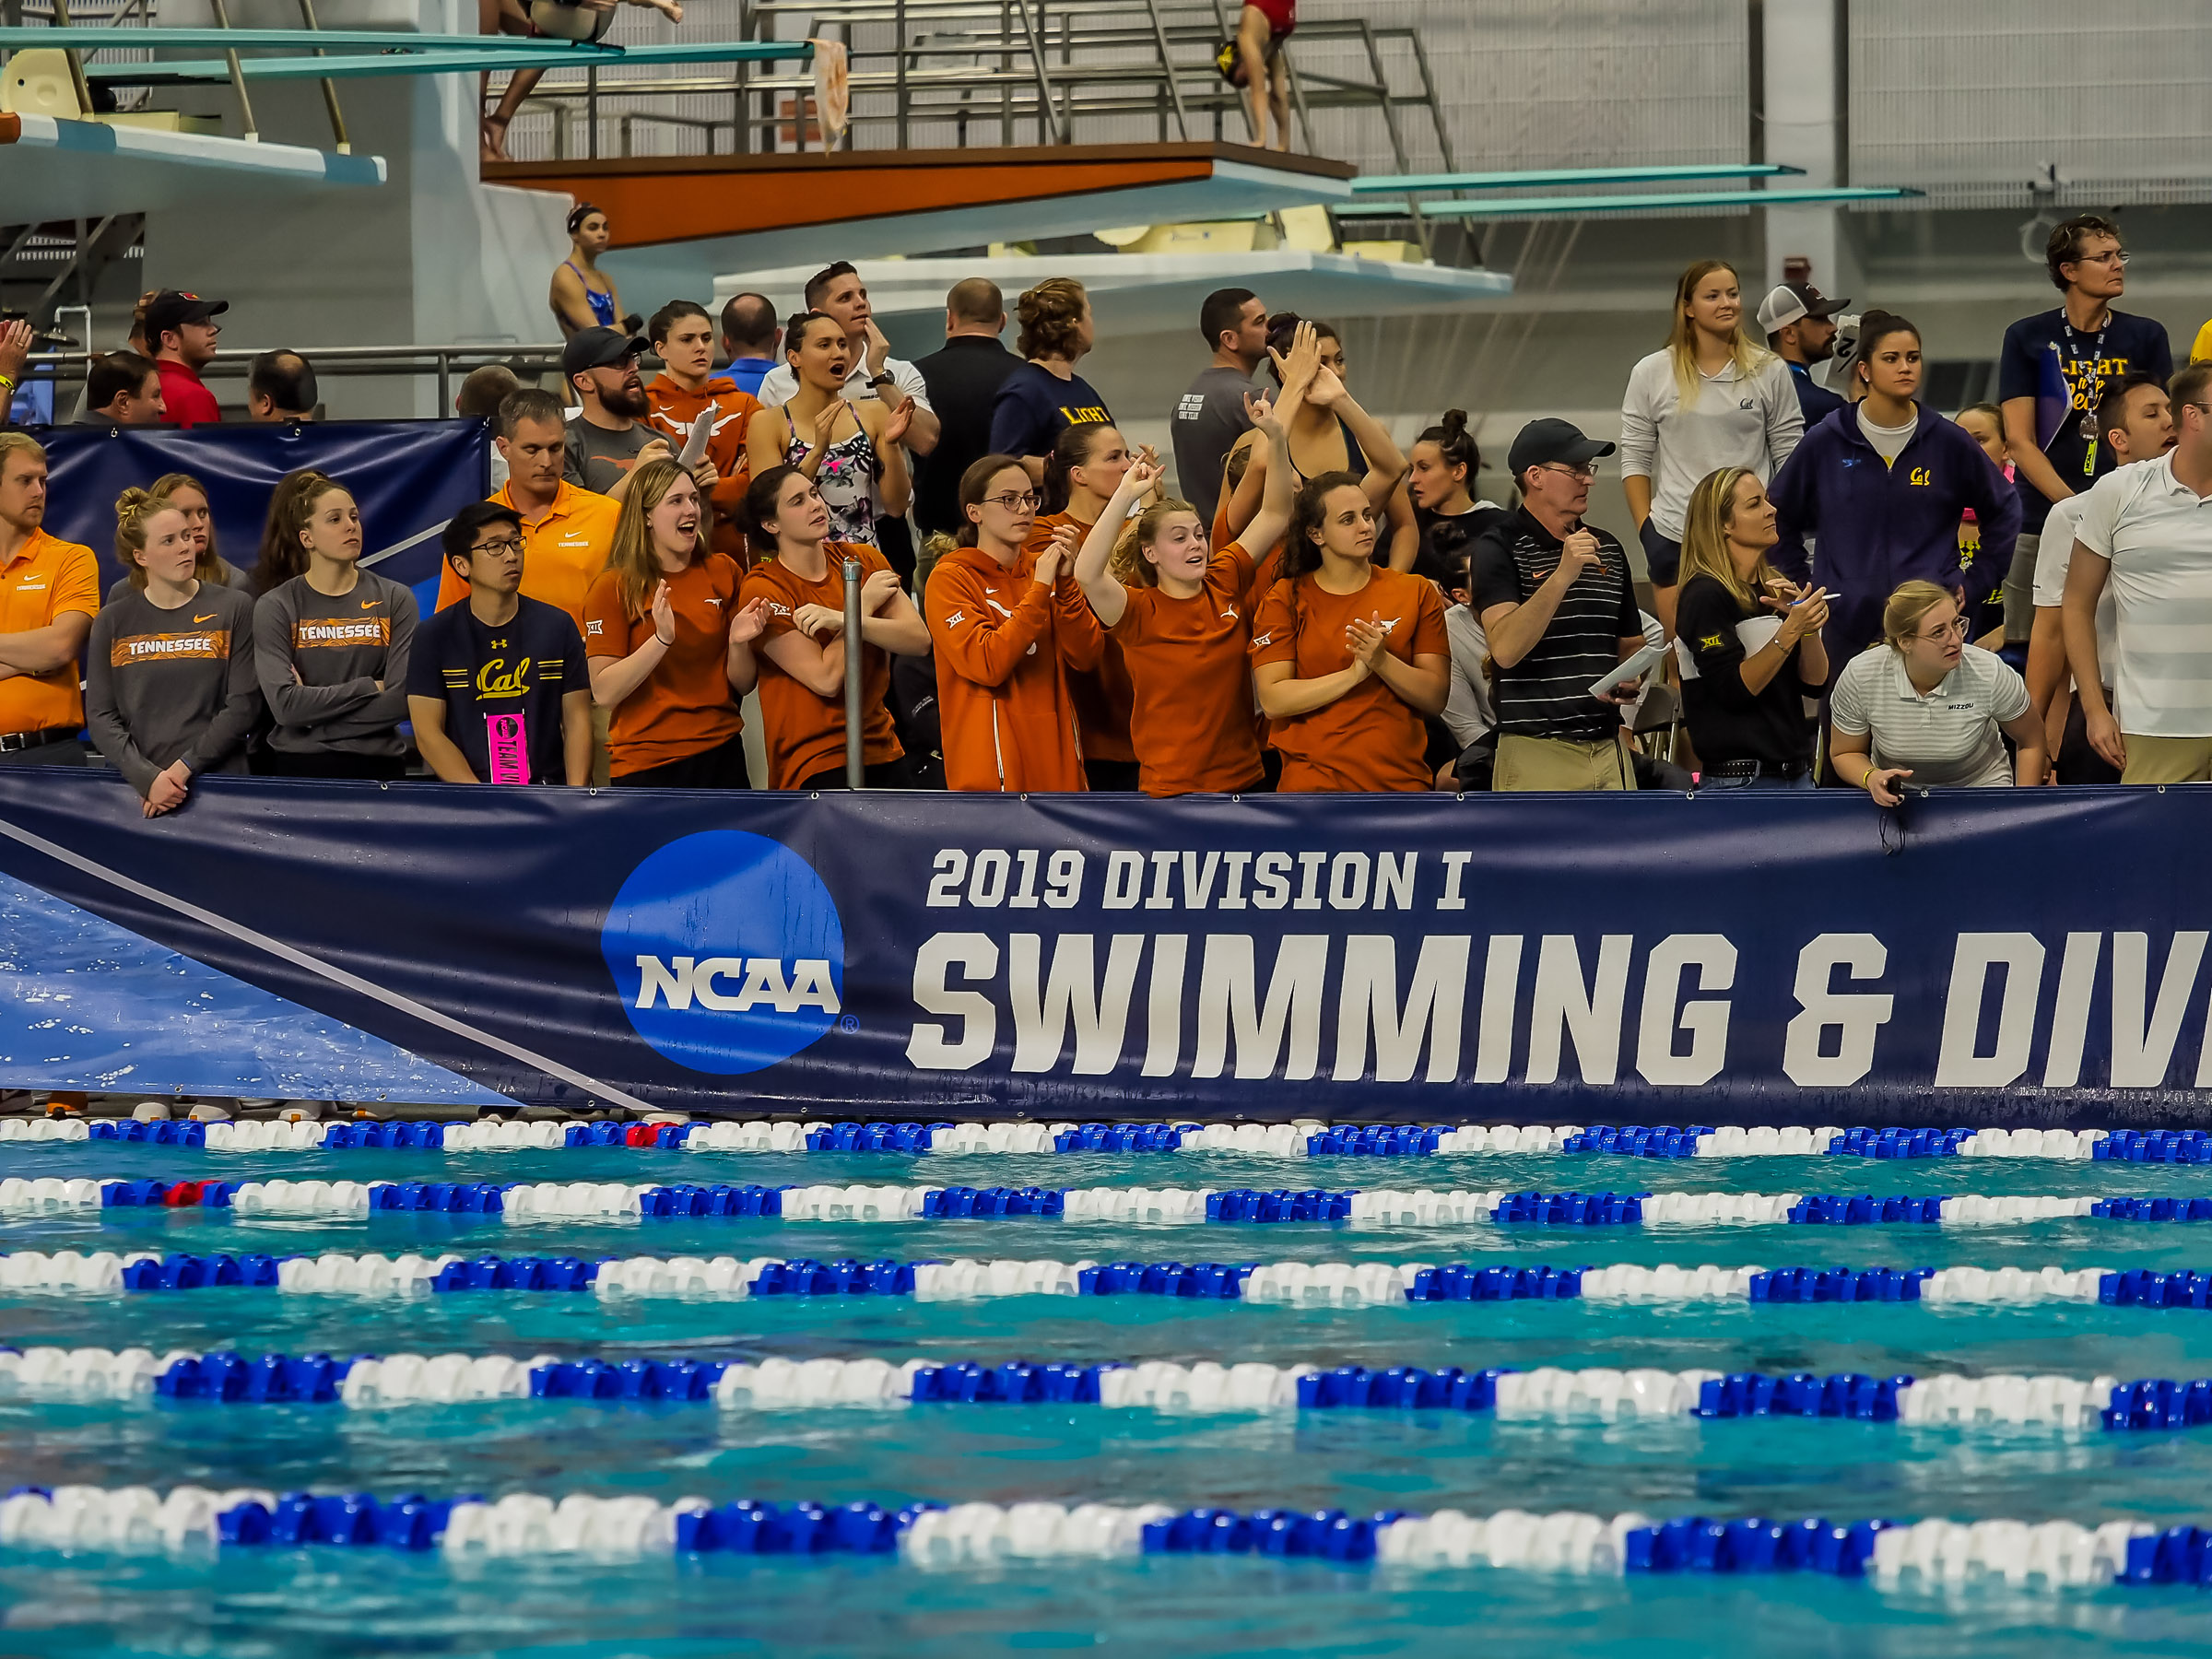 2019 NCAA Division I Women's Swimming Championships: Day Four Prelims Photo Gallery - Swimming World News